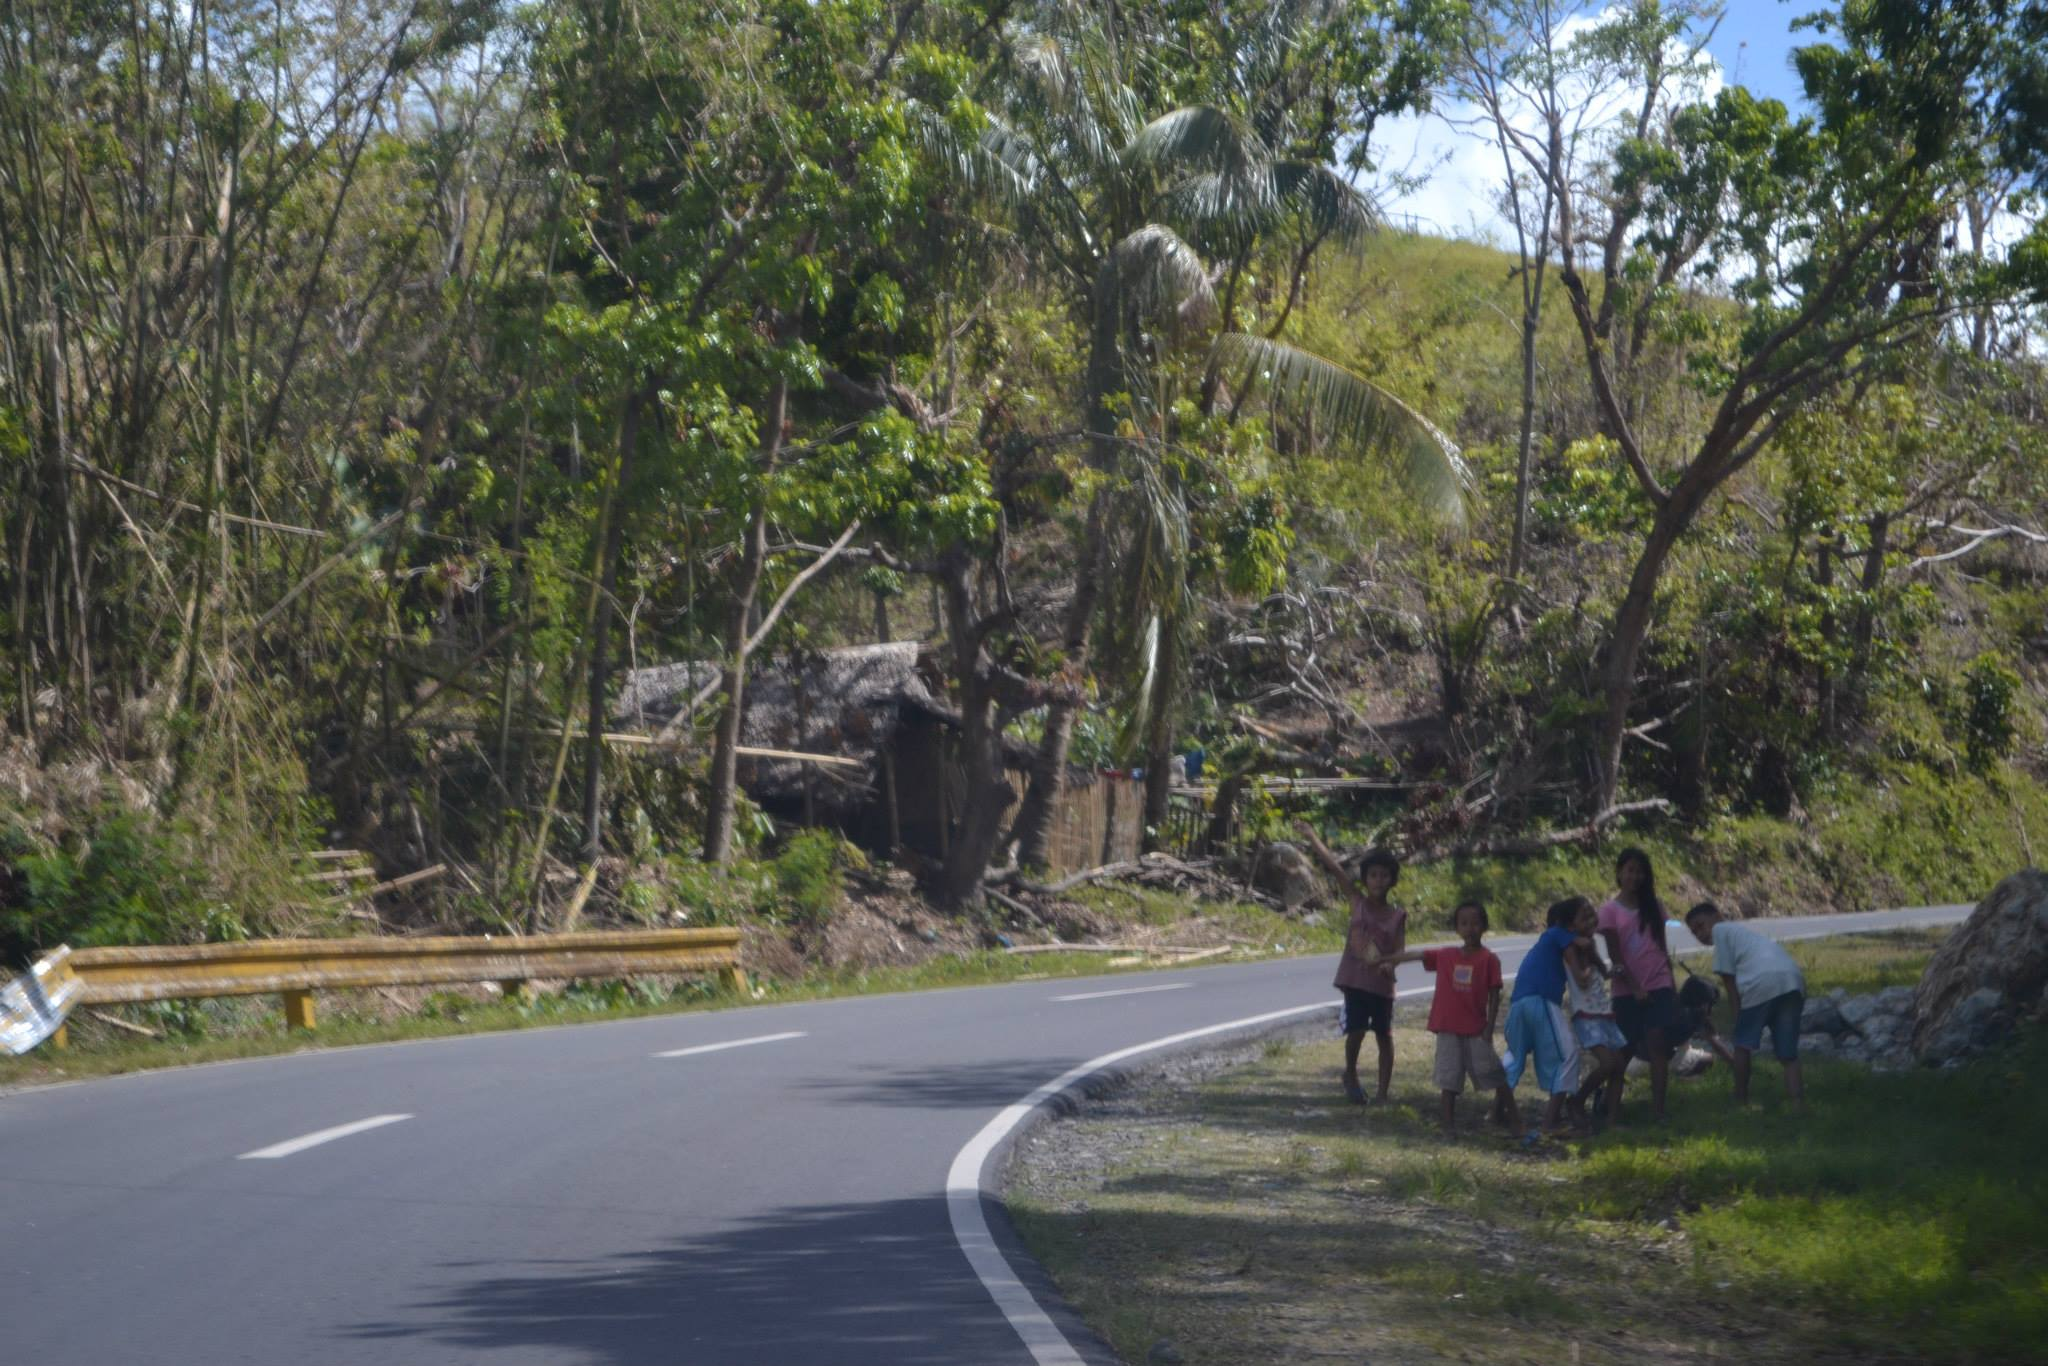 A common sight along the highways: children reaching their hands out for help.